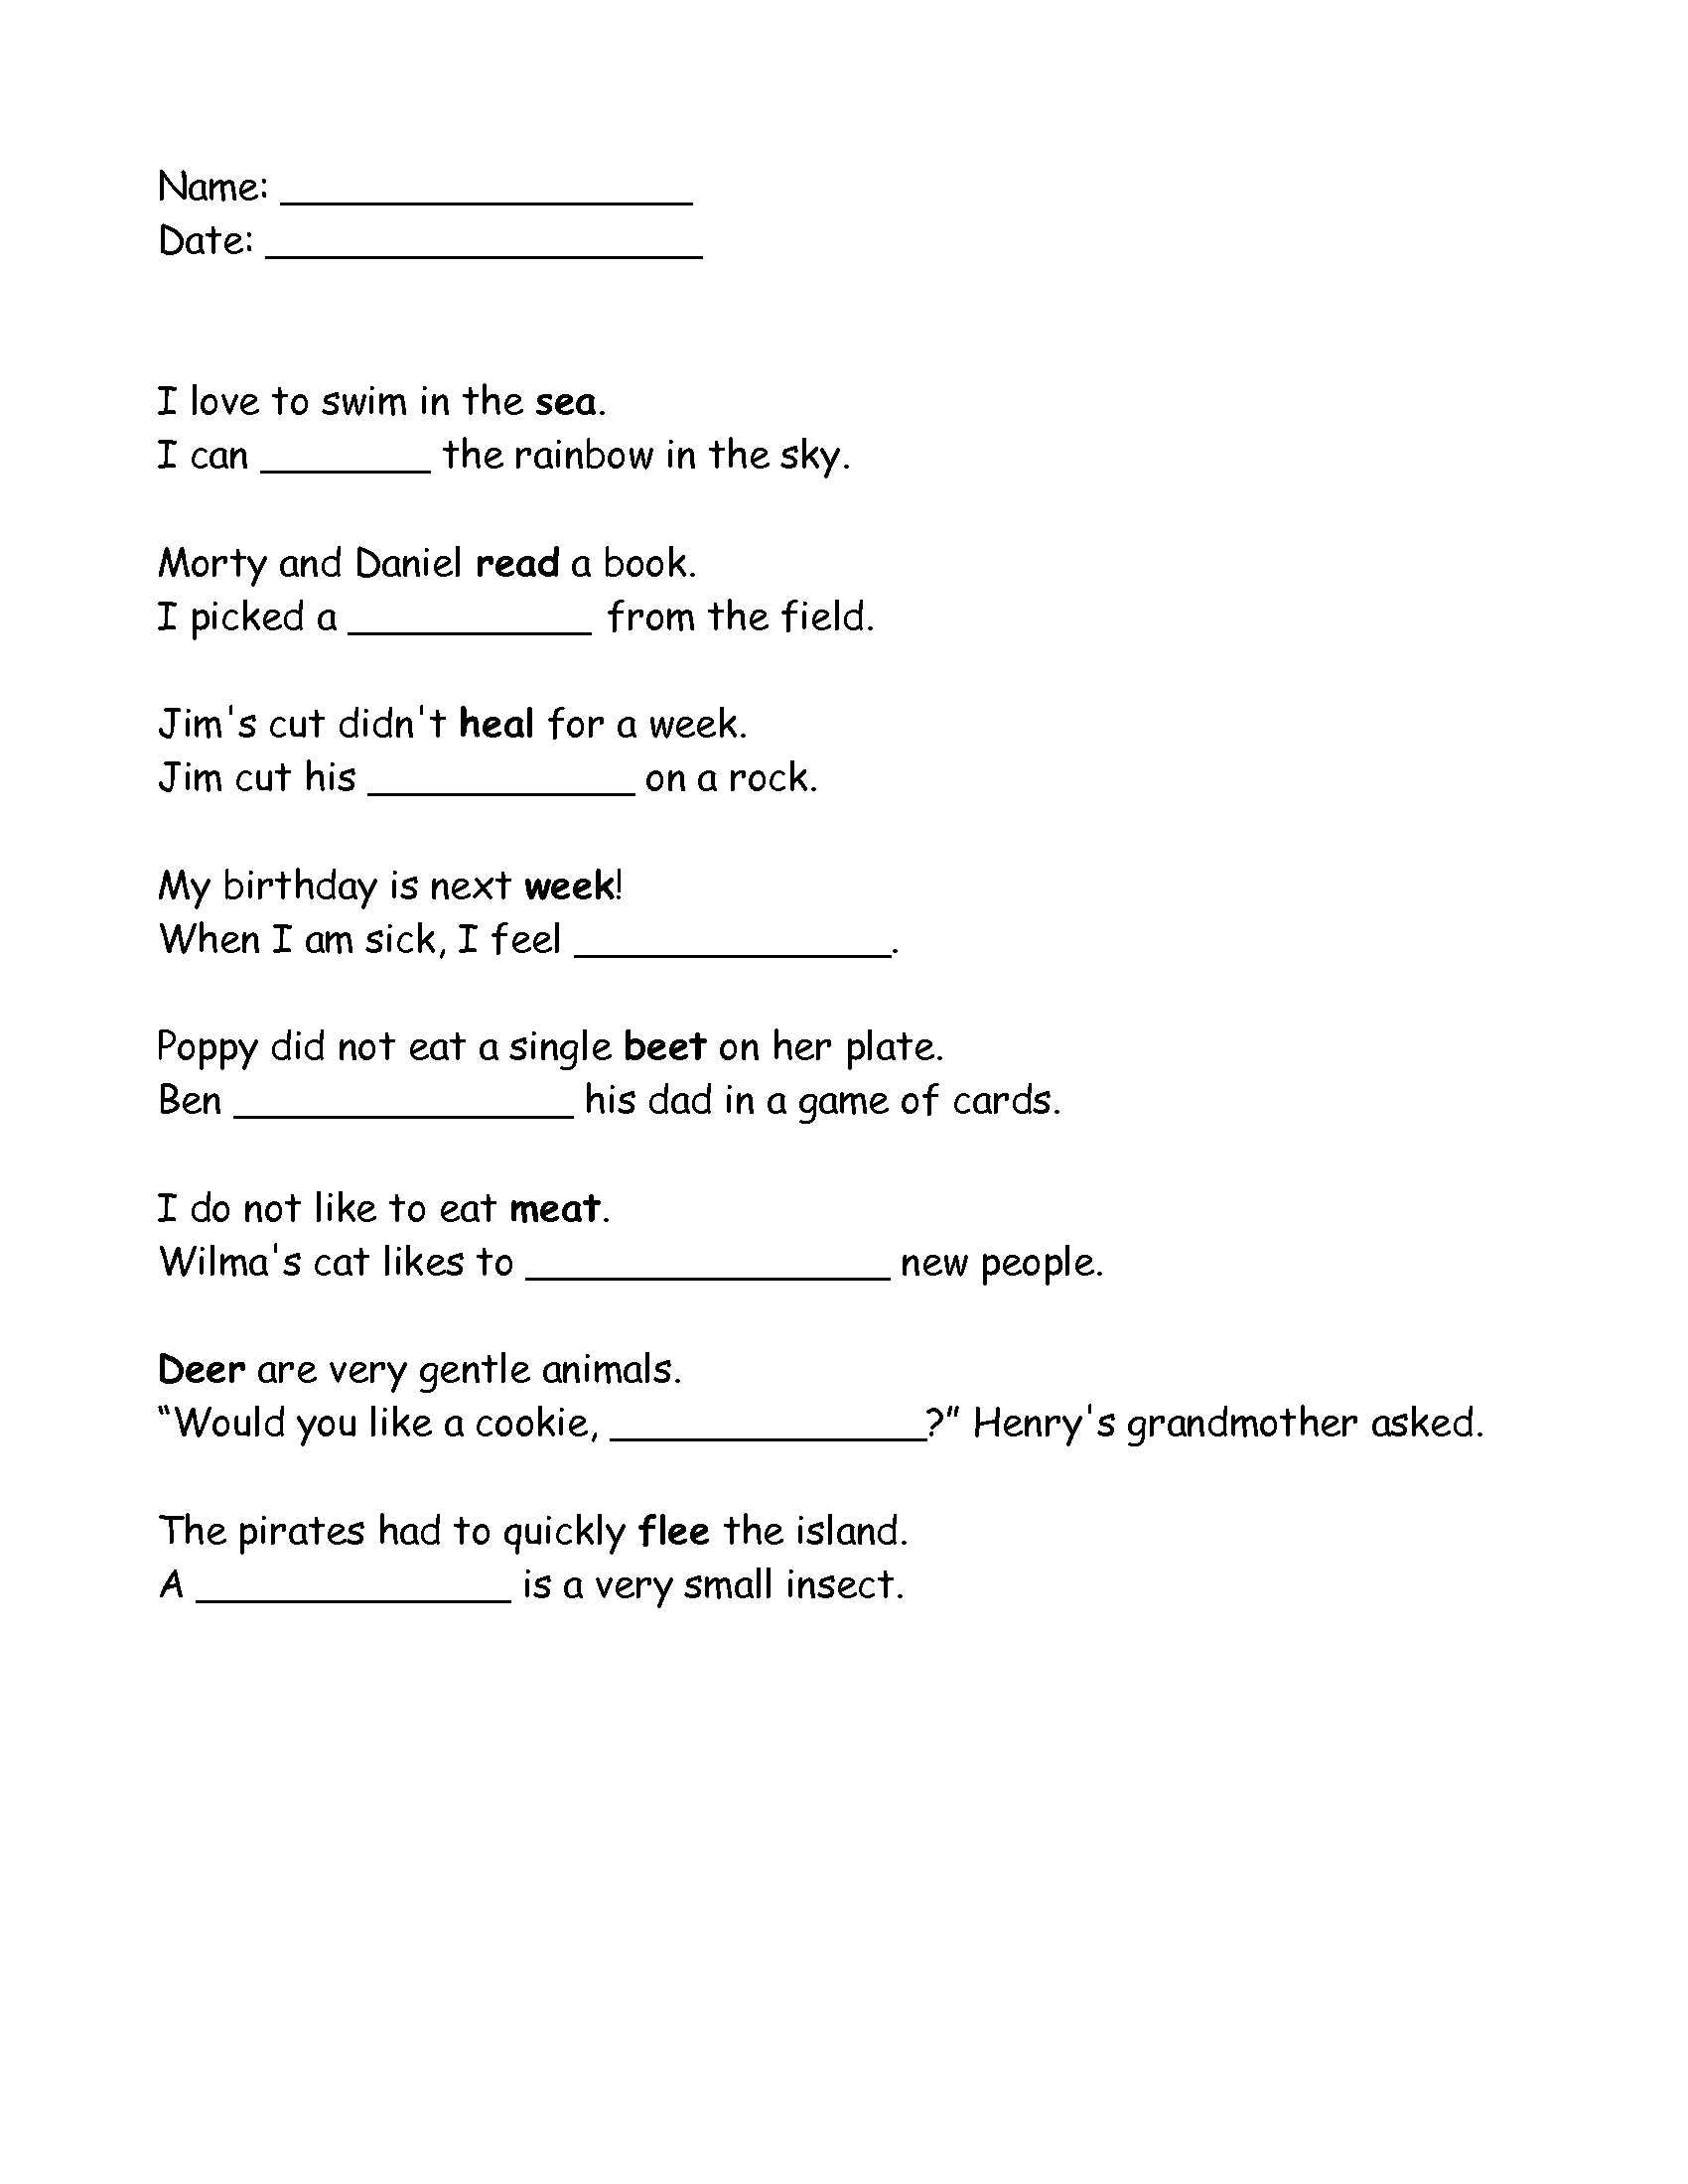 worksheet Homophones Worksheet Pdf grade 2 homophones ee and ea worksheet that i made click on image for